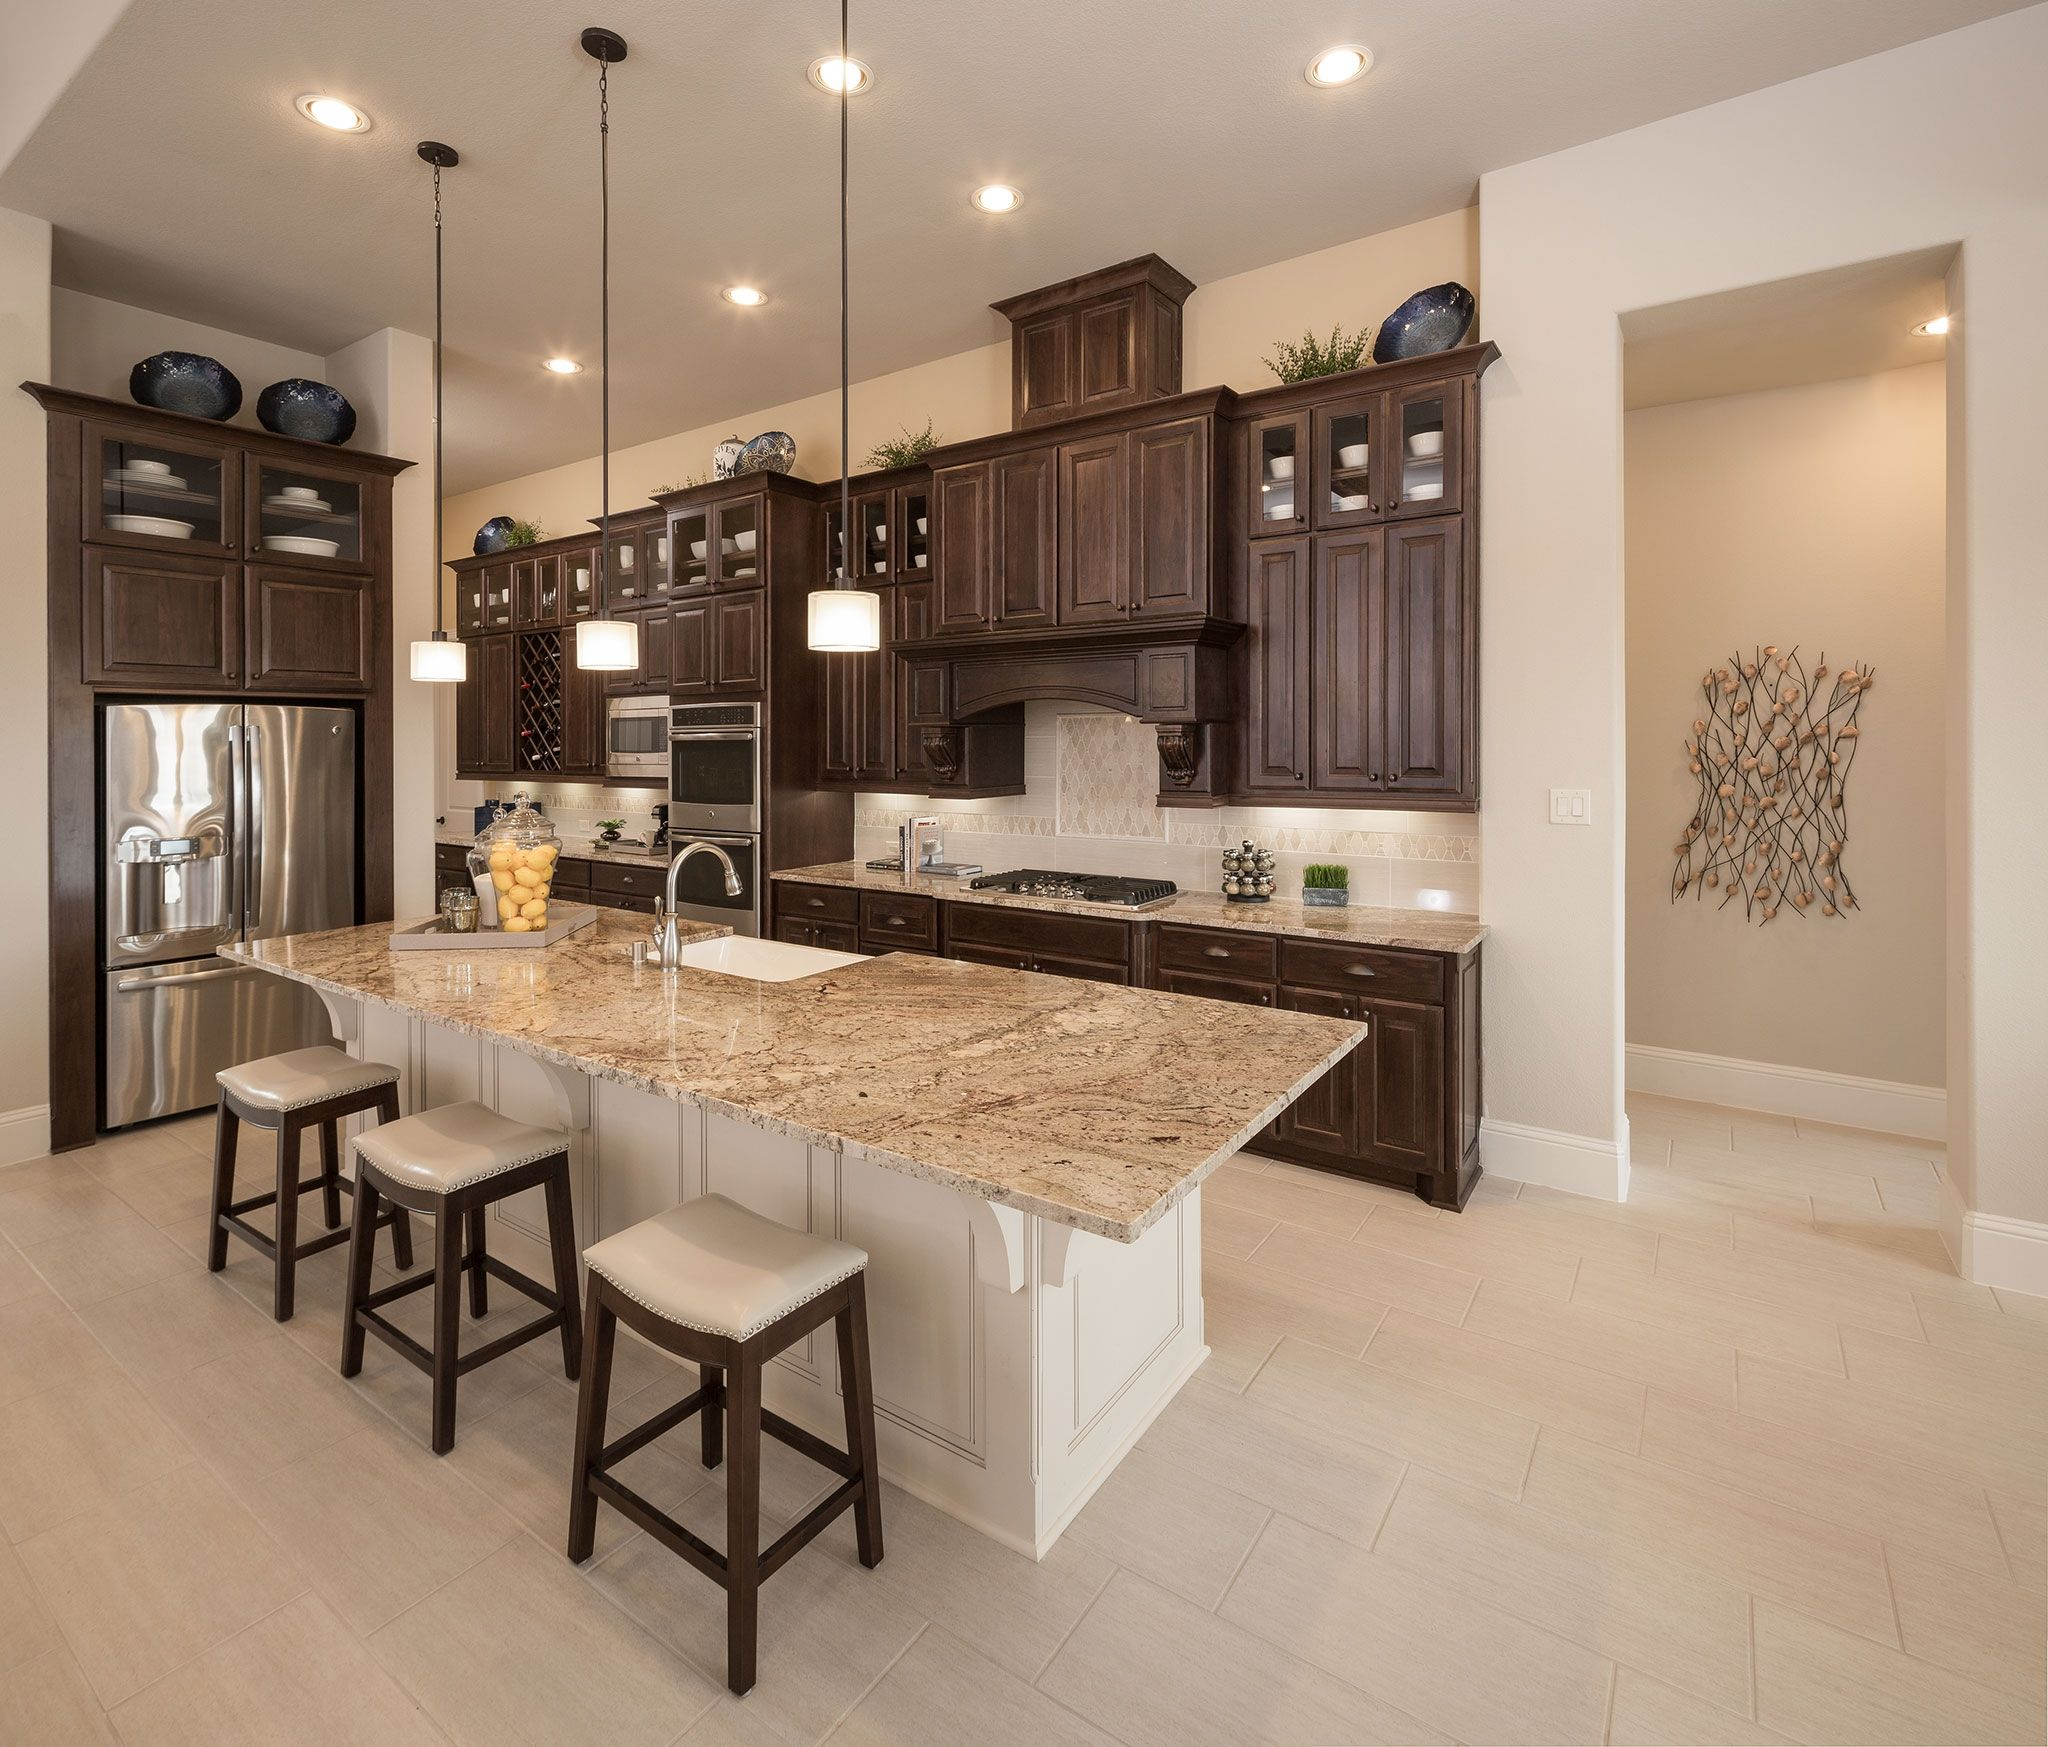 Kitchen-in-Plan 6015-at-Cane Island-in-Katy